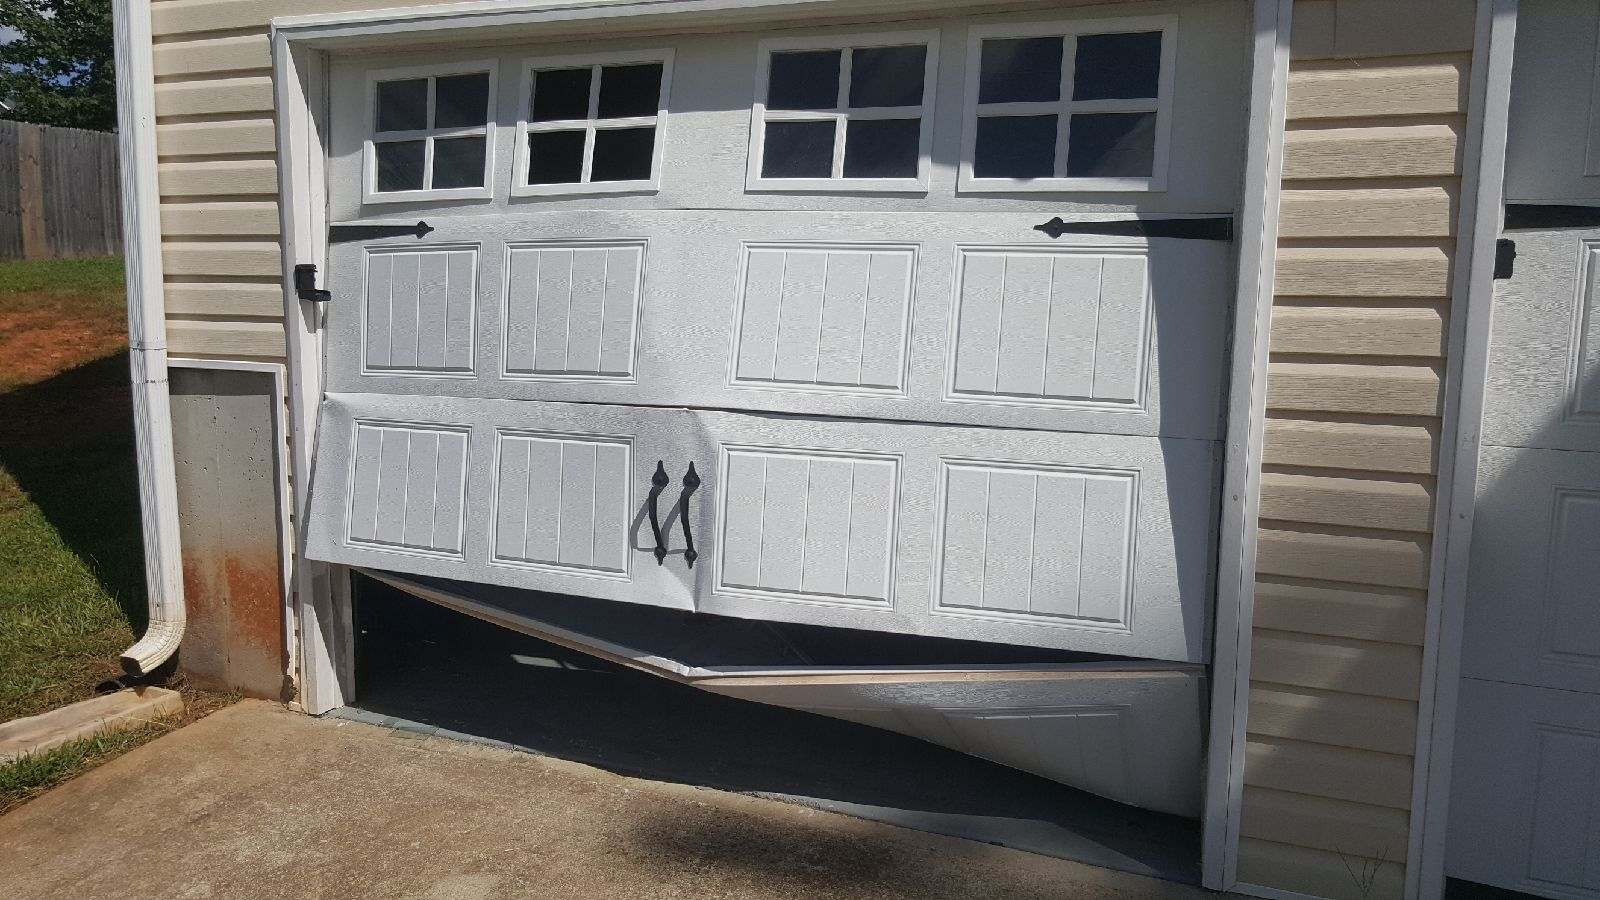 My Garage Door Was Backed Into